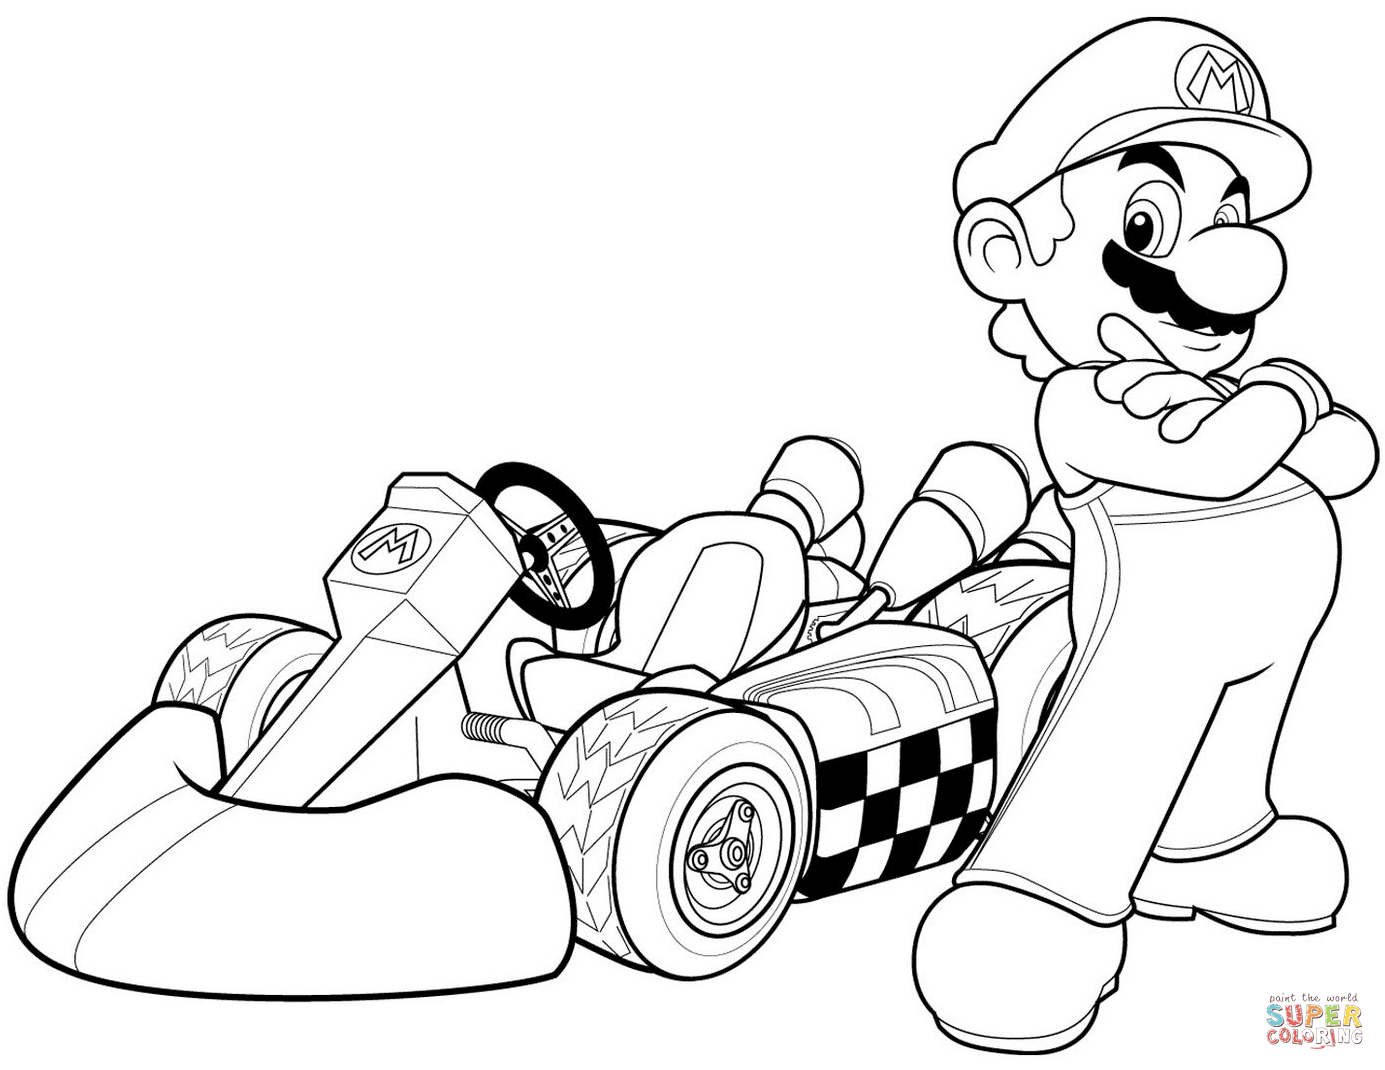 Mario Coloring Pages To Print Super Mario Bros Coloring Pages Free Coloring Pages